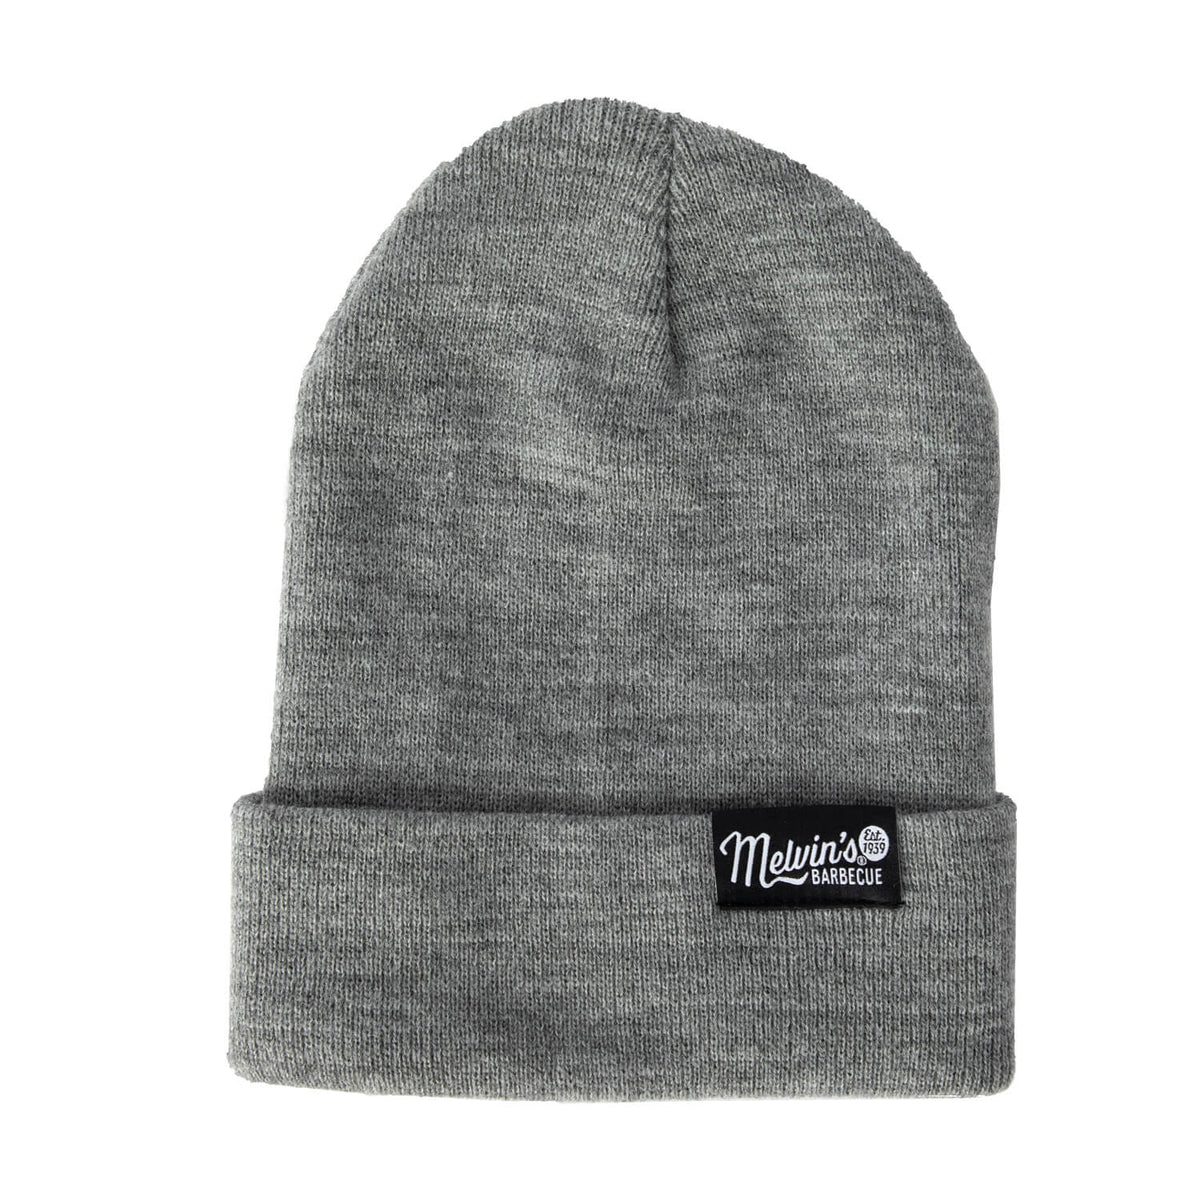 melvin's light grey beanie